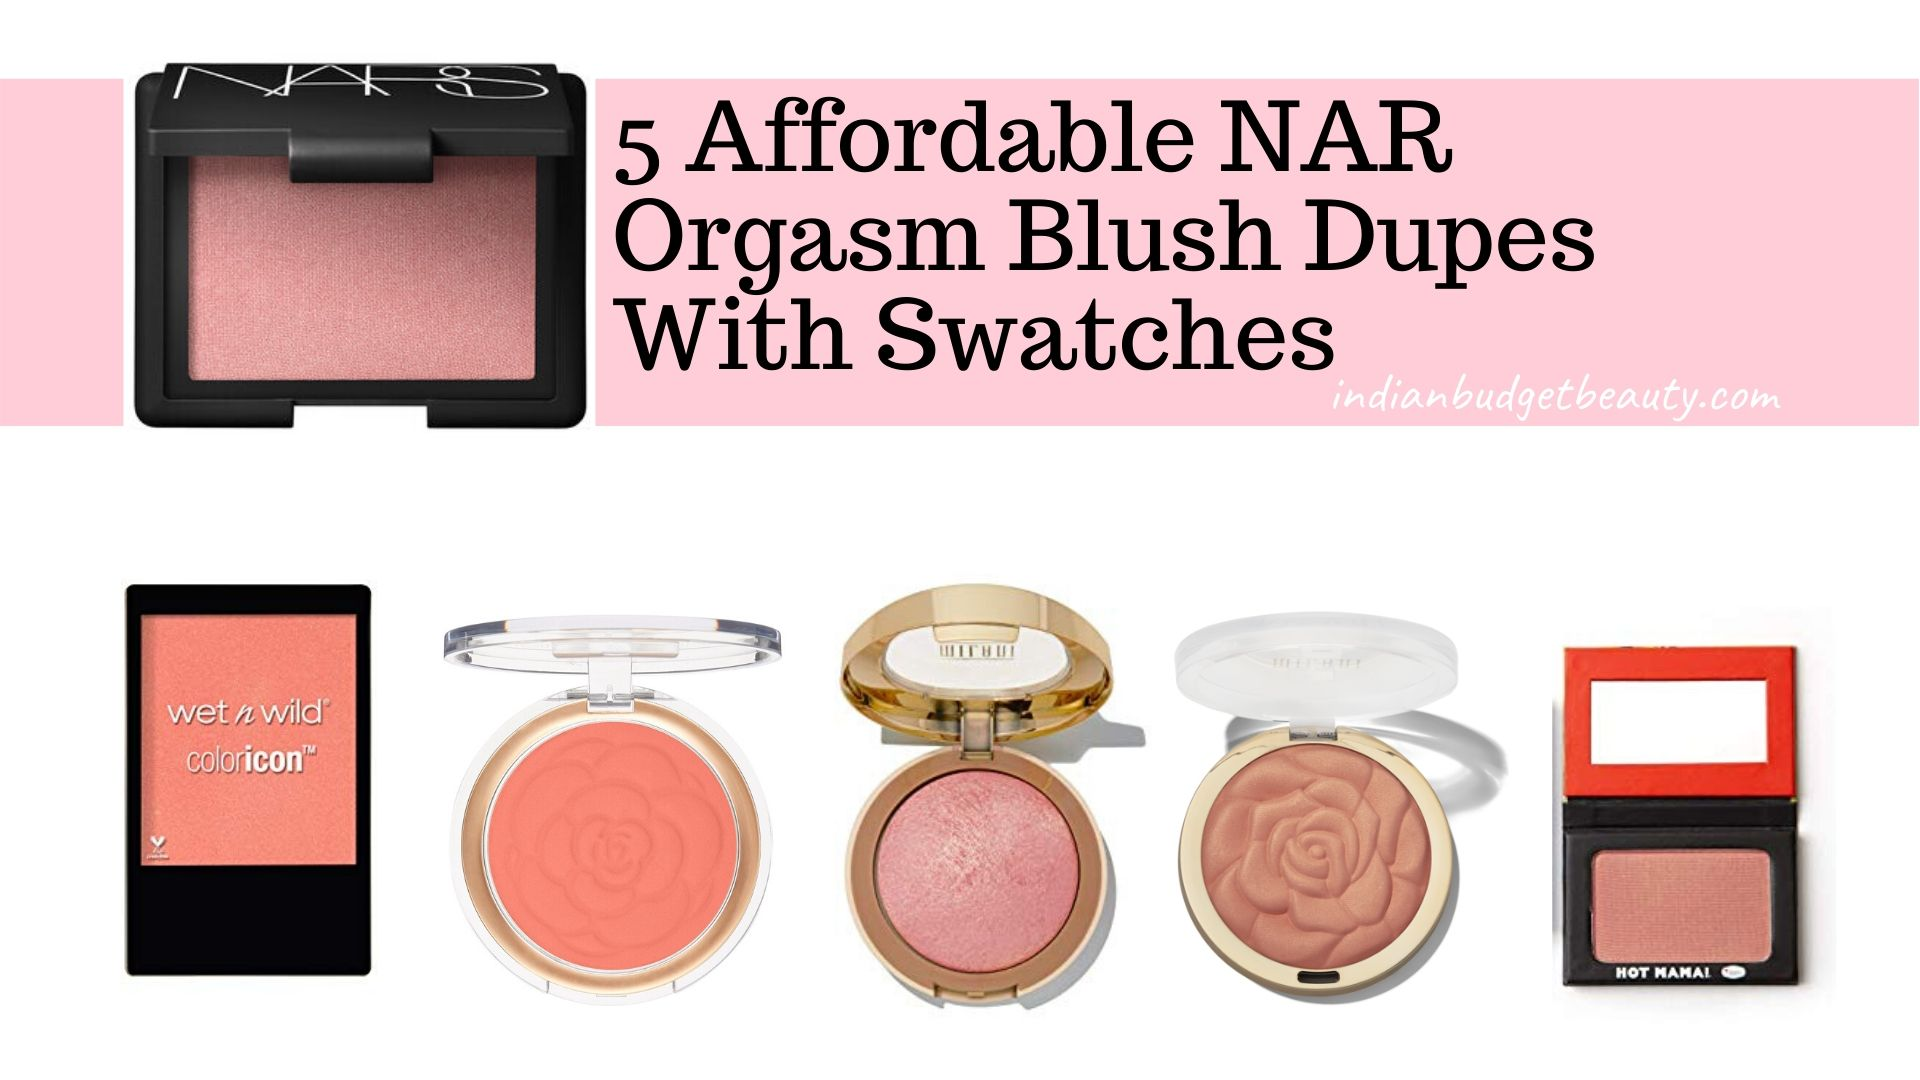 5 Affordable NARS Orgasm Blush Dupes With Swatches